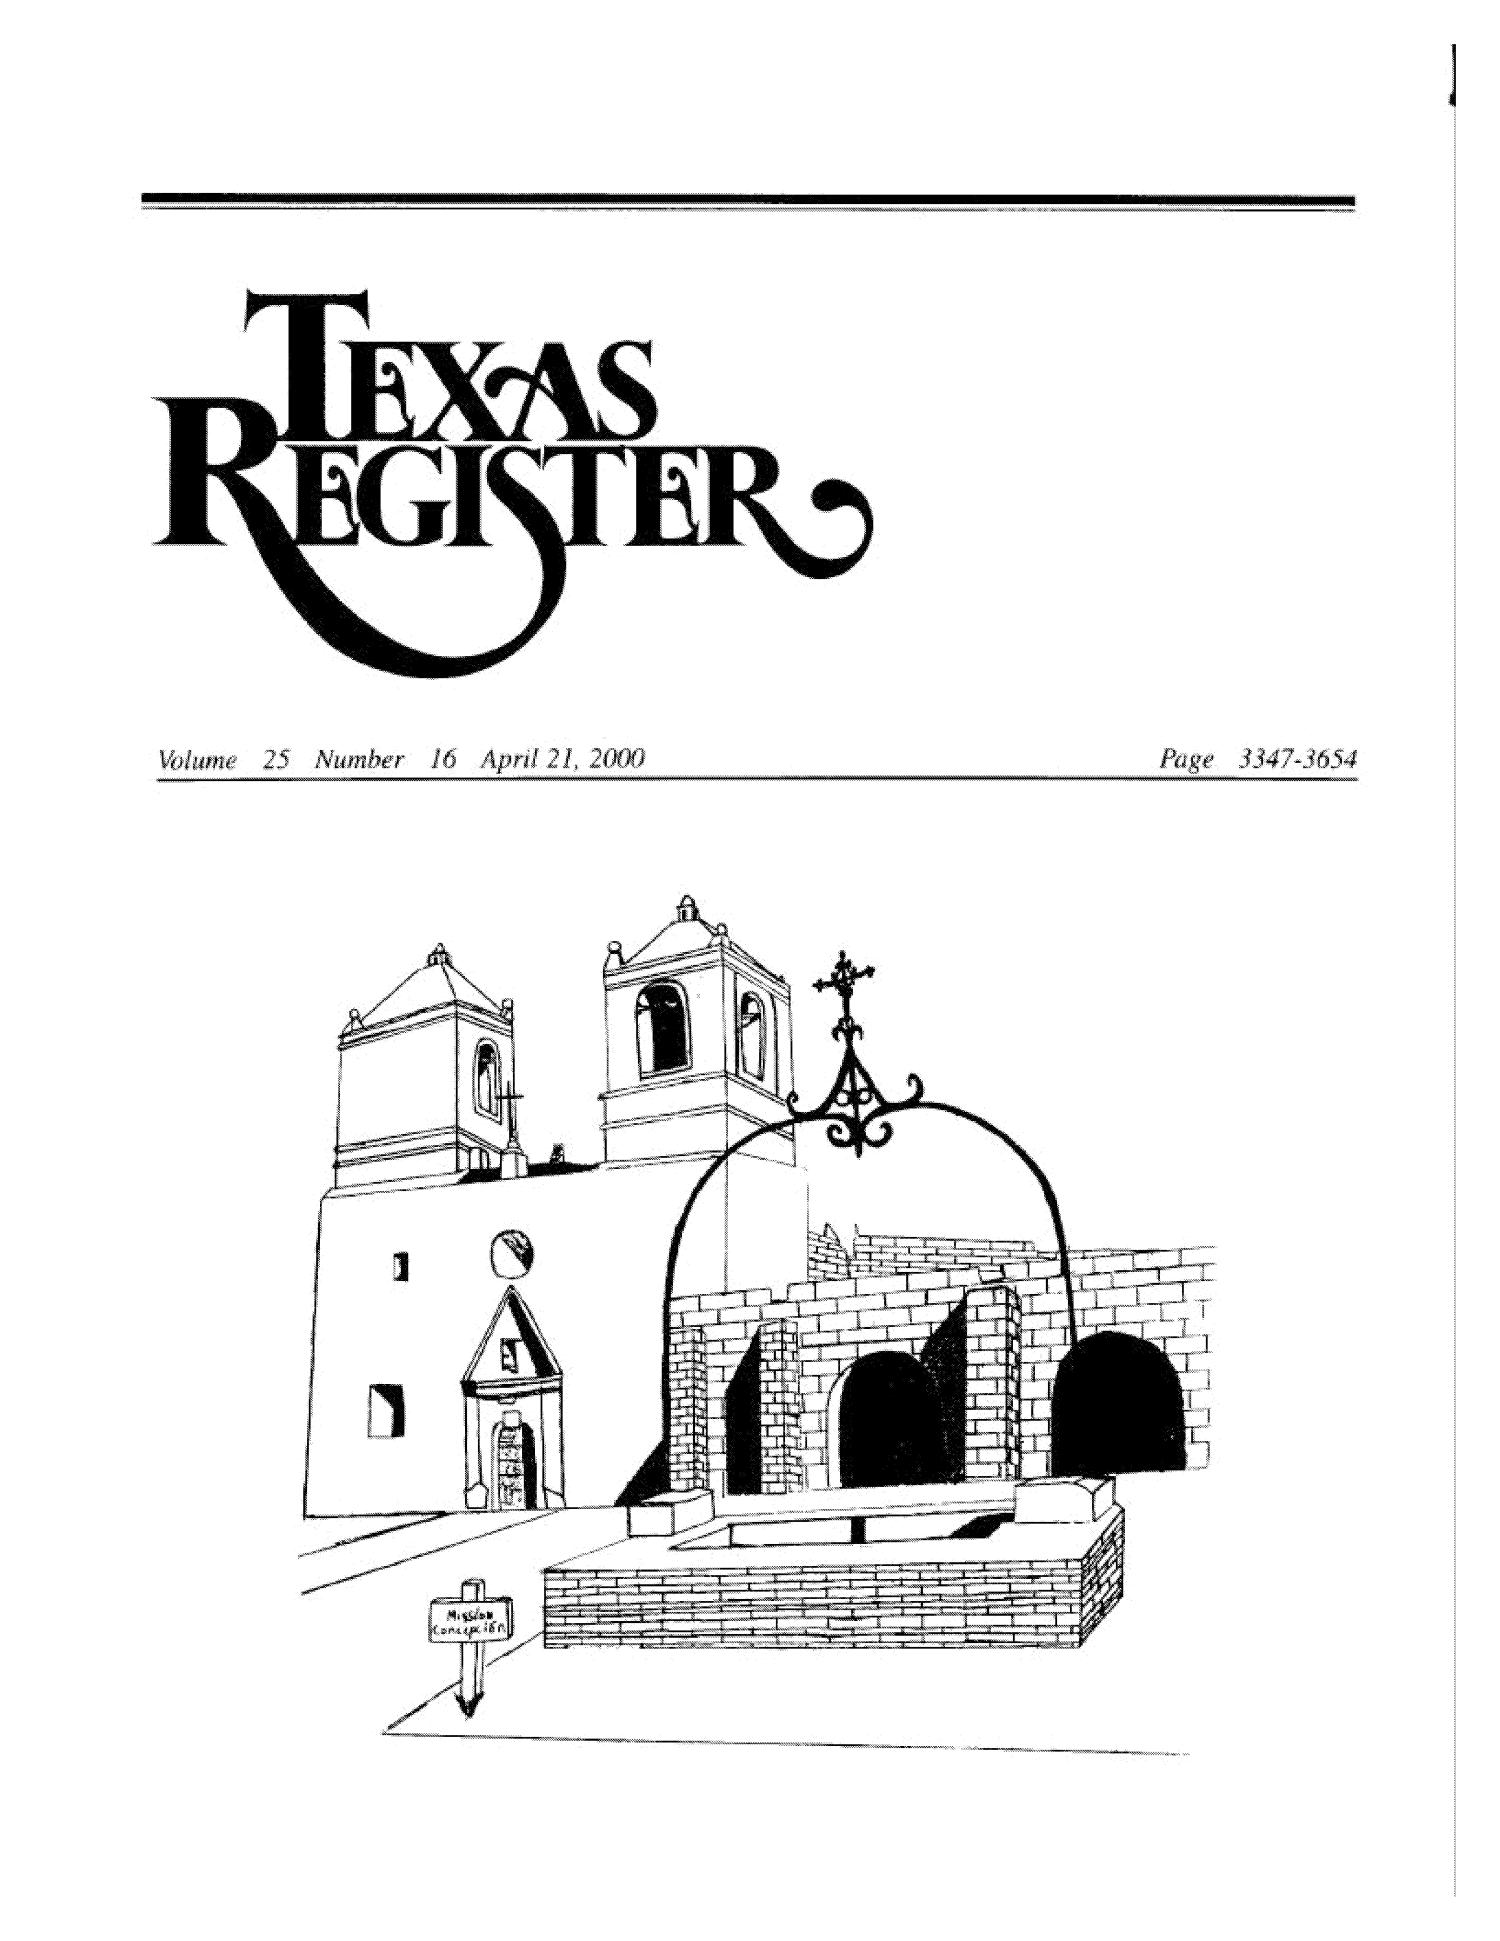 Texas Register, Volume 25, Number 16, Pages 3347-3654